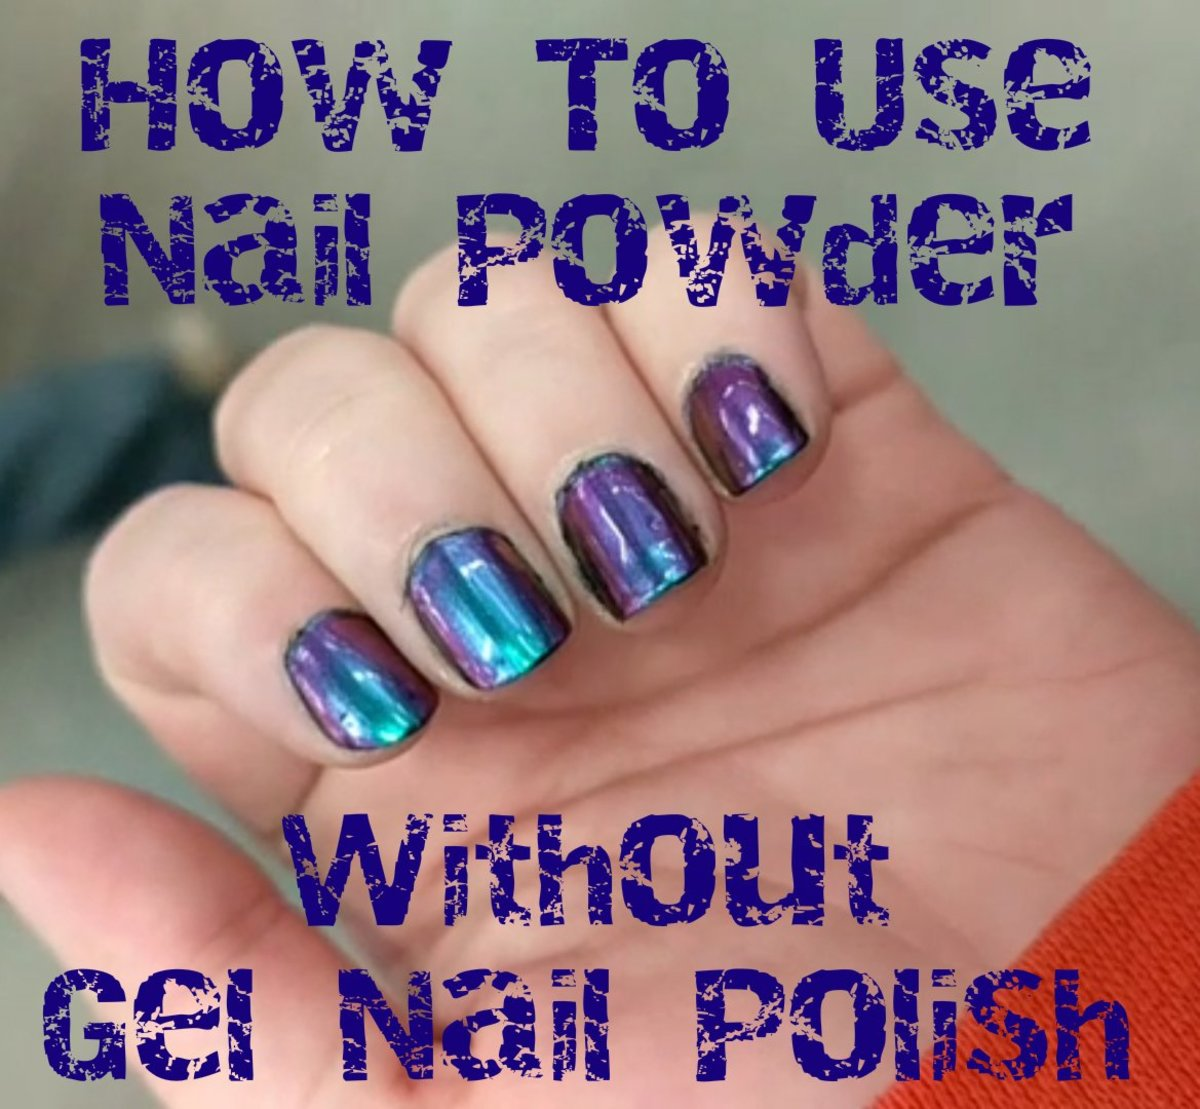 Nails Diy How To Use Multichrome Or Holographic Powder Without Gel Nail Polish Bellatory Fashion And Beauty